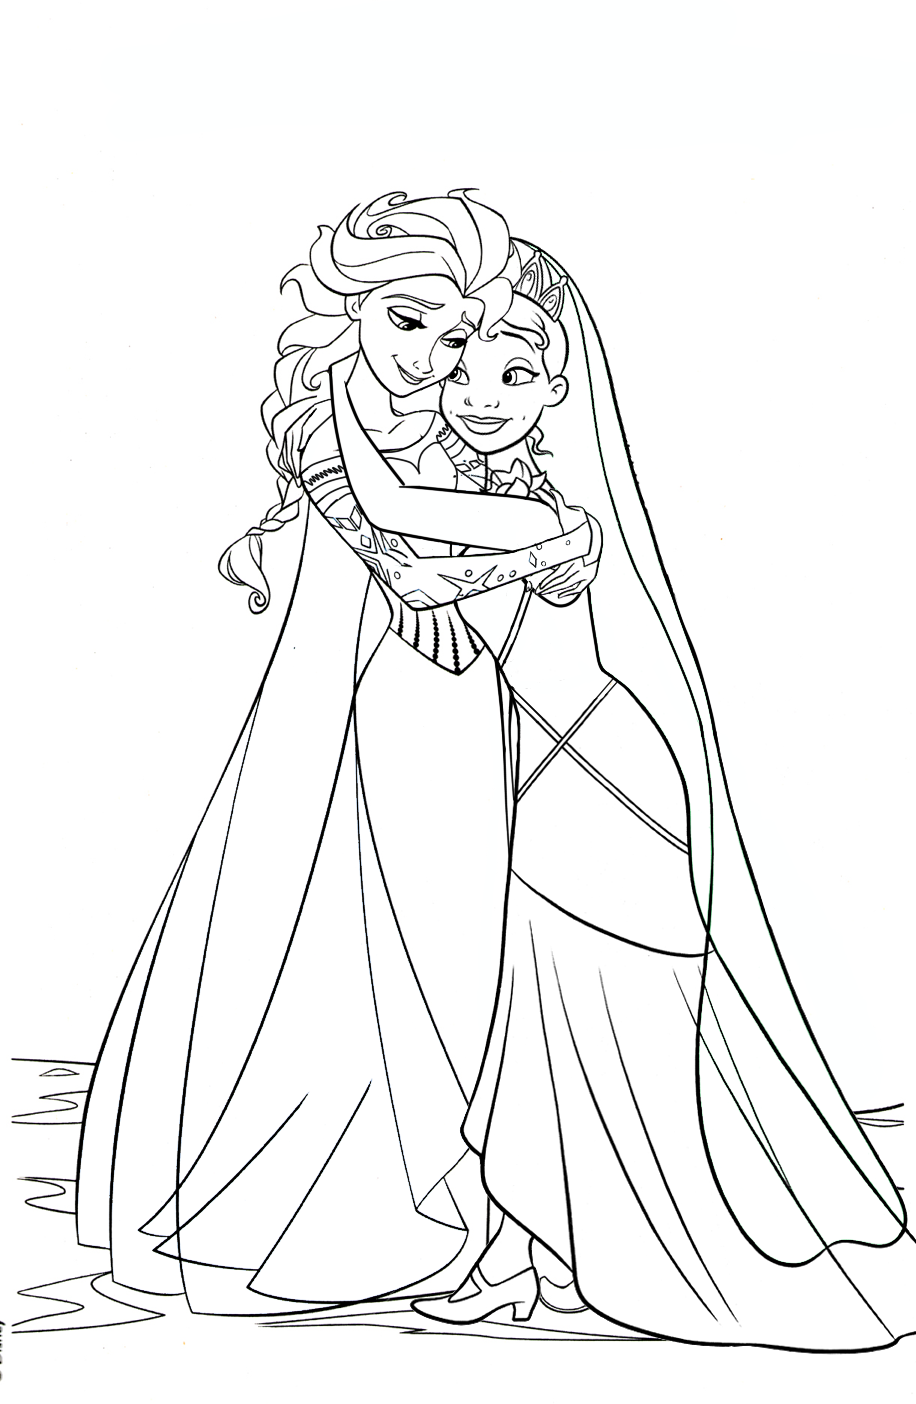 Disney coloring page   Coloring Pages(Trisha\'s Board )   Pinterest ...